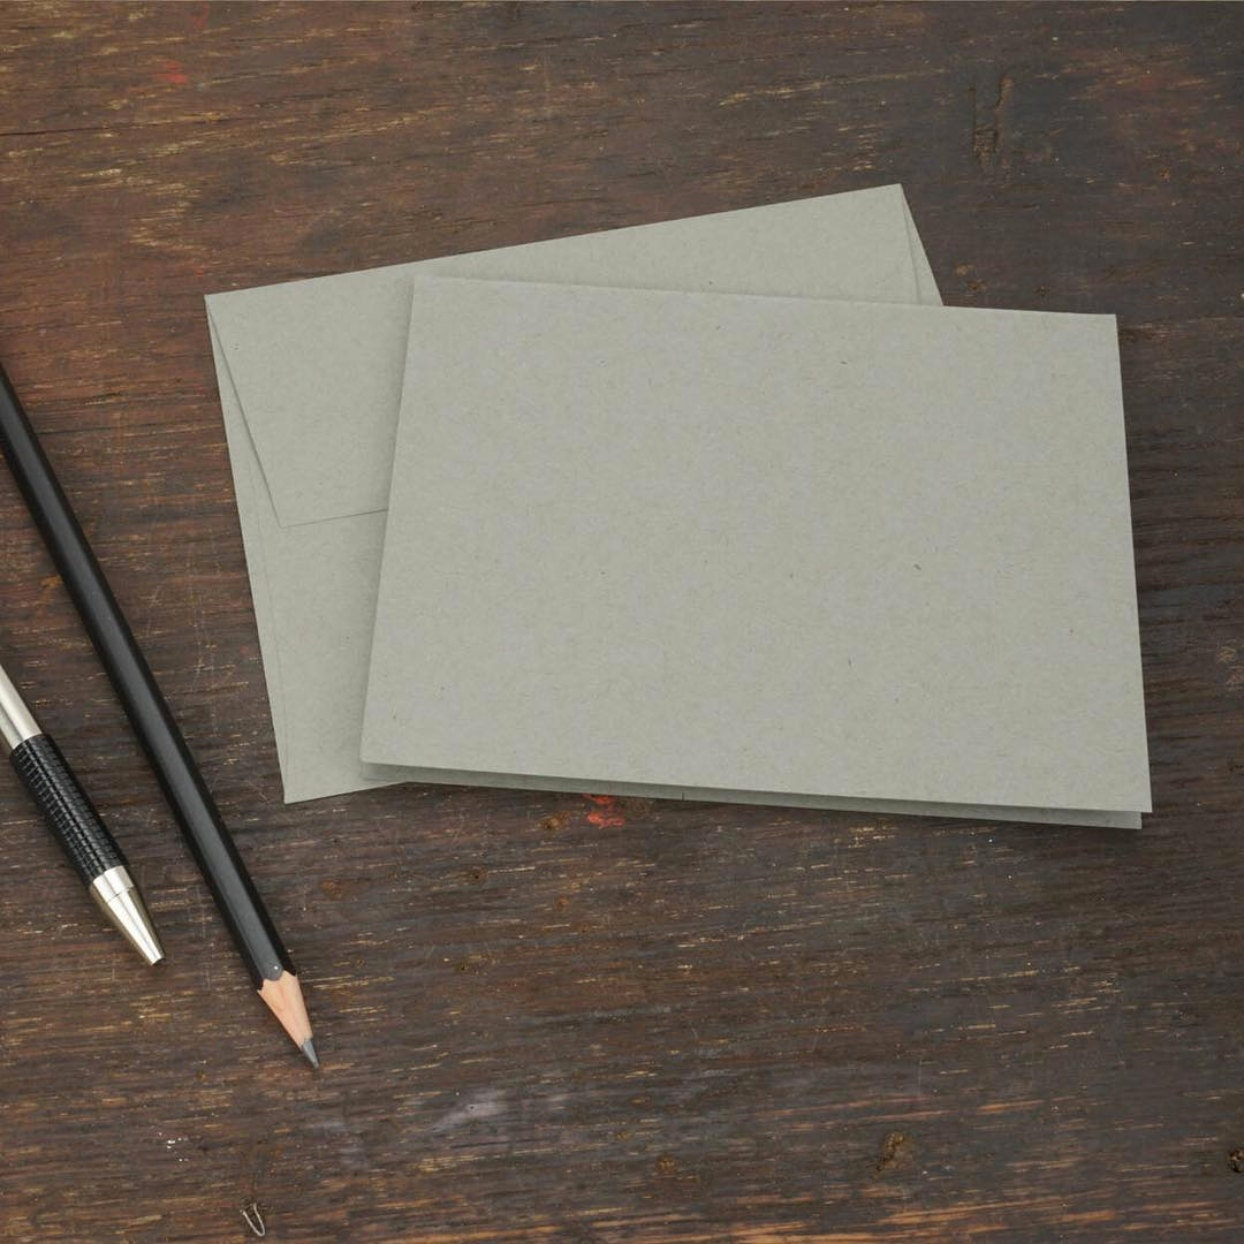 Notecards and Envelopes—Card Making Supplies